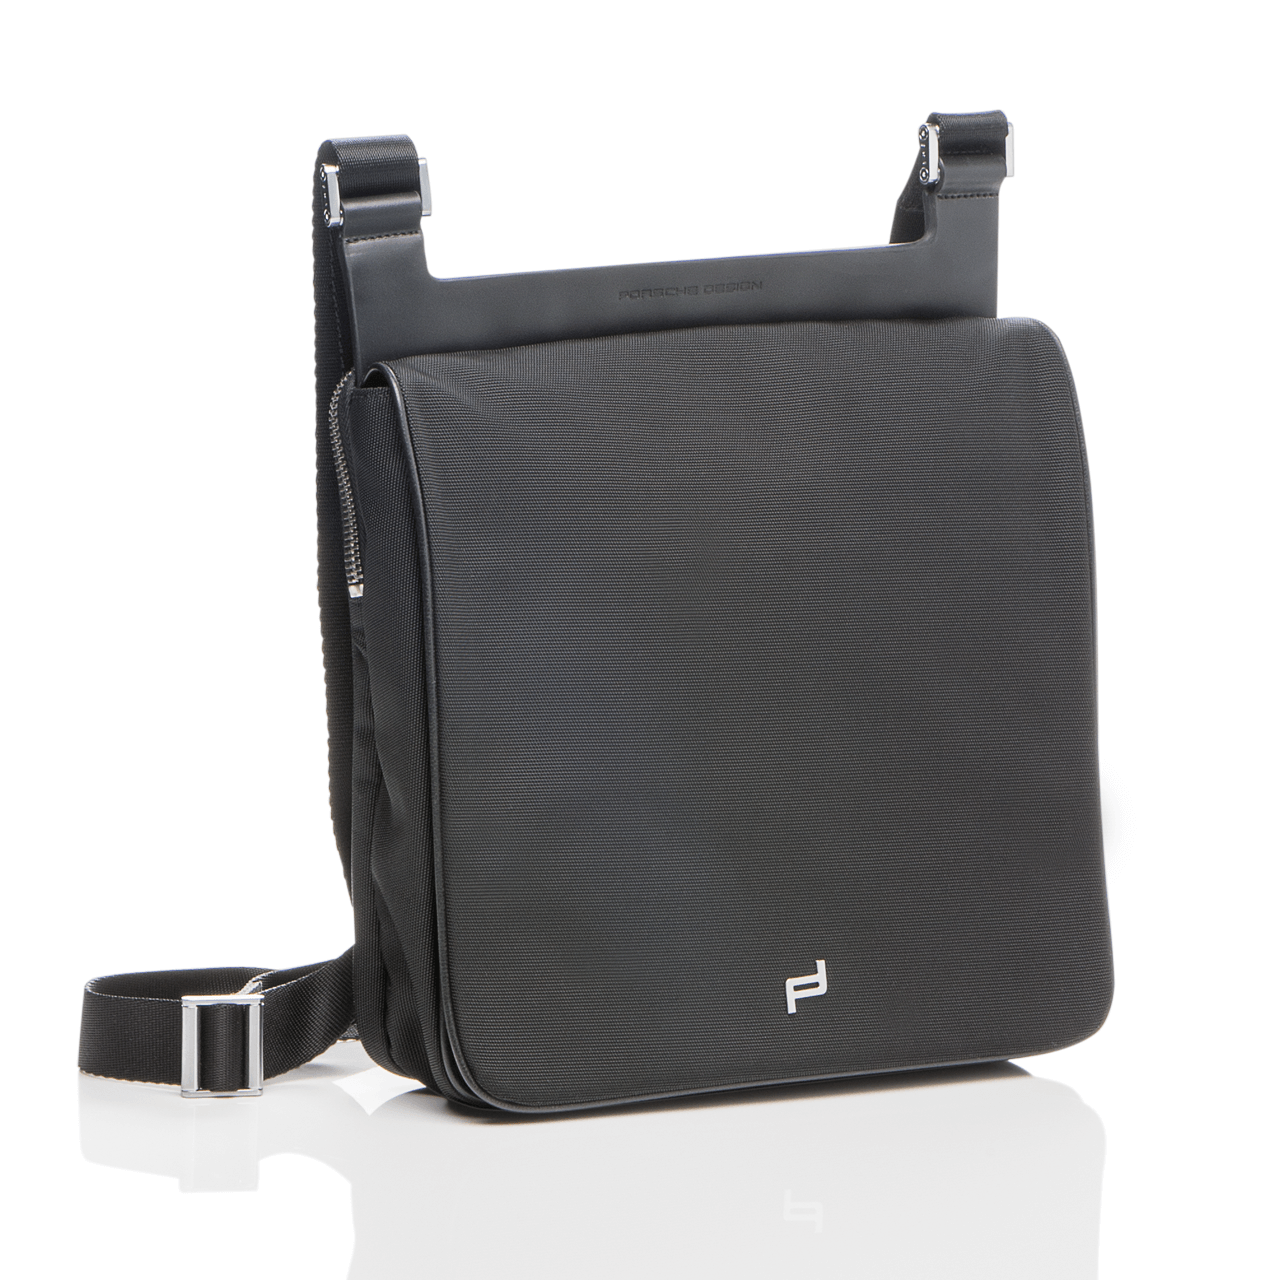 SHYRT NYLON SHOULDERBAG MFV - фото 1